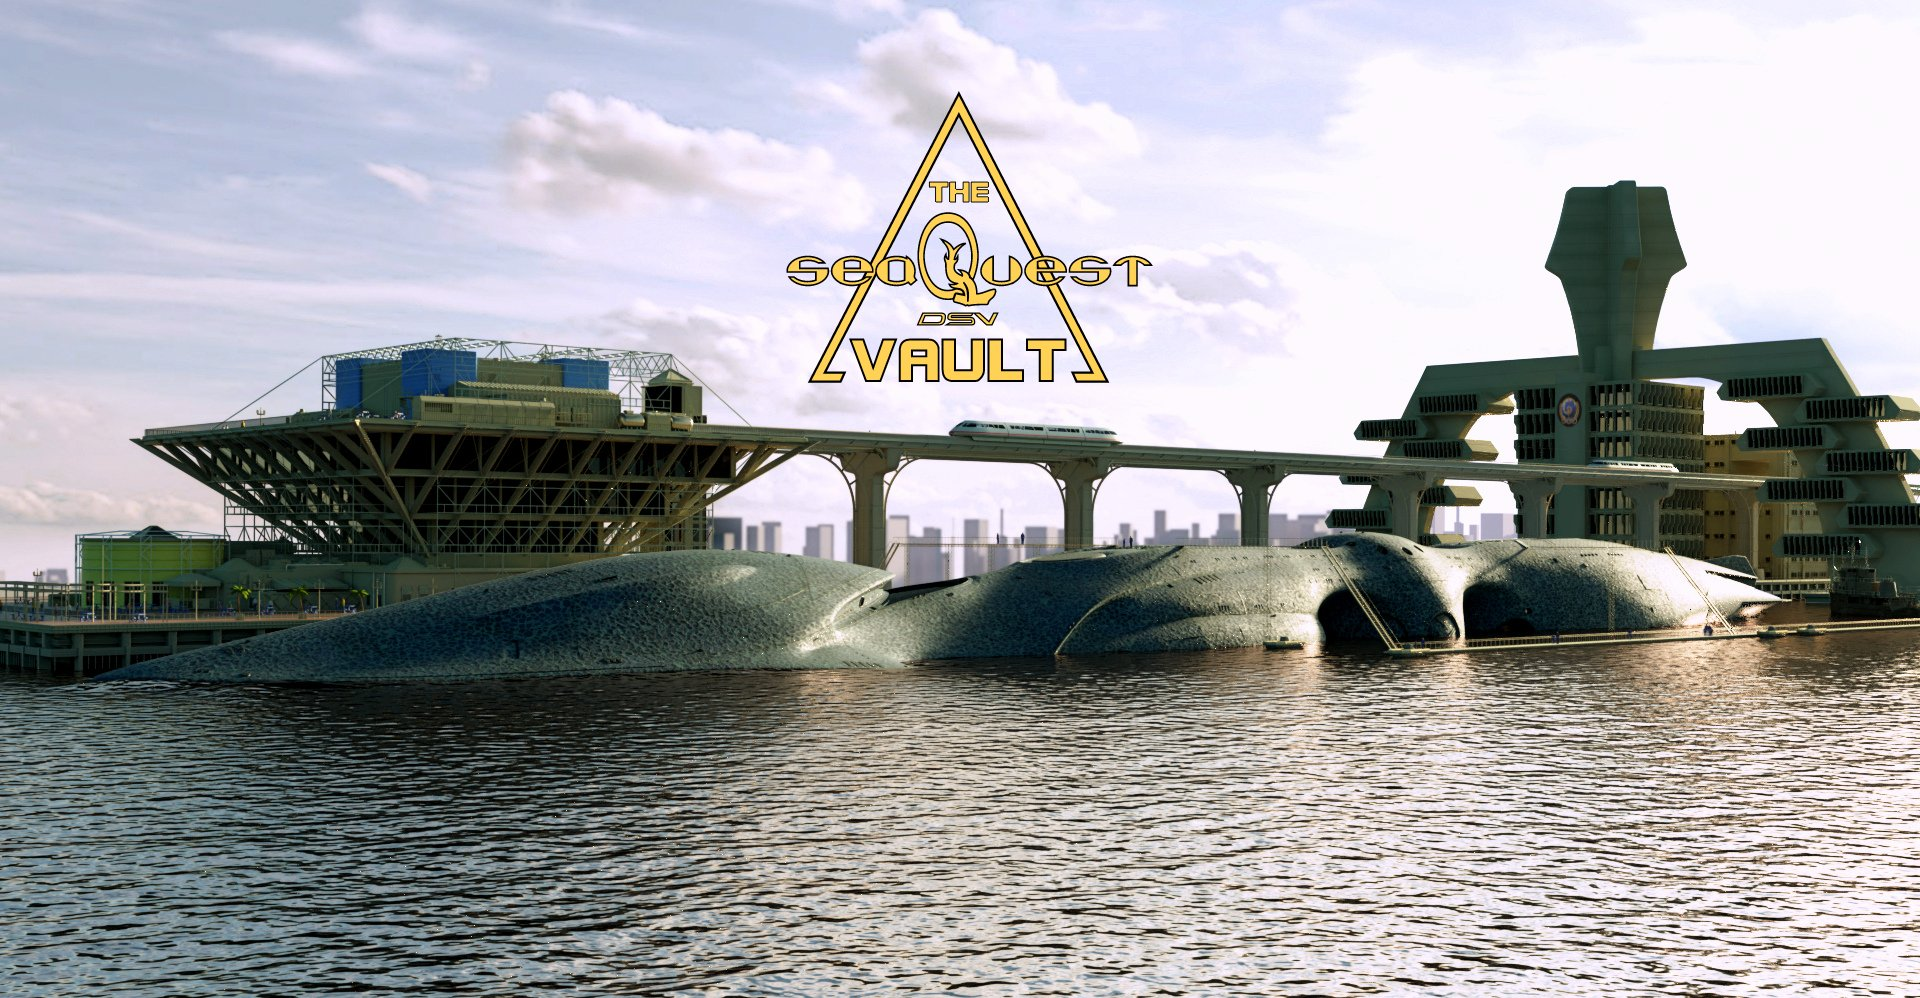 The seaQuest DSV Vault